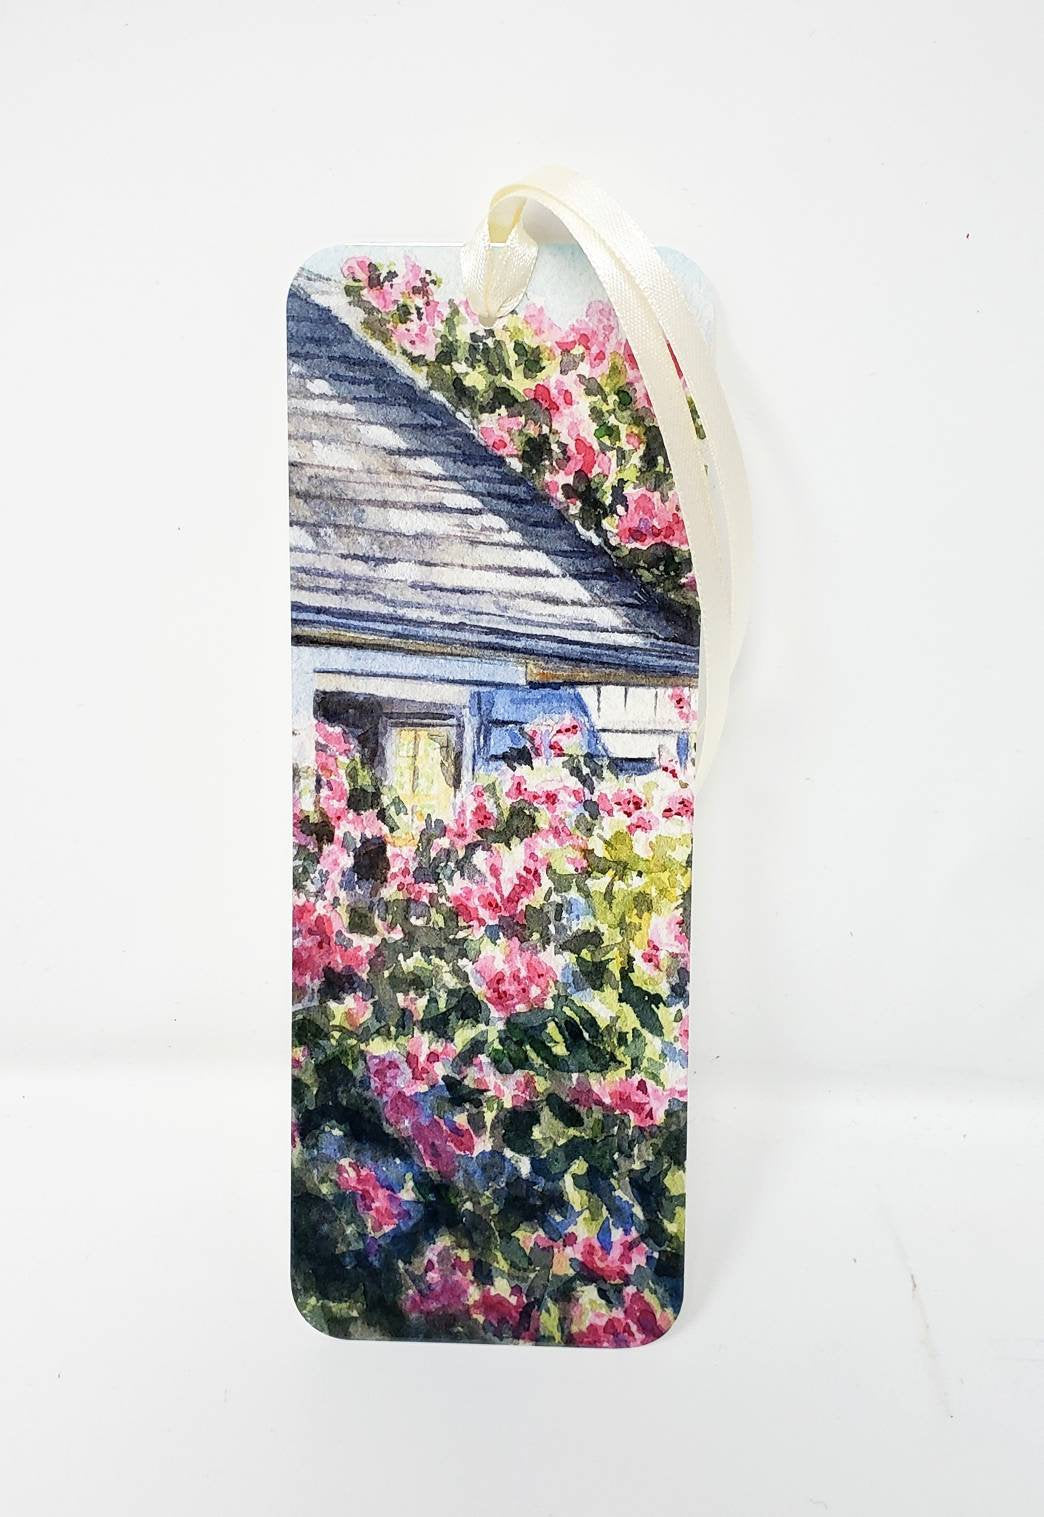 Nantucket Bookmark Nantucket Roses watercolor painting small gift stocking stuffer for her Sconset art Cape Cod art gift for reader - Leigh Barry Watercolors